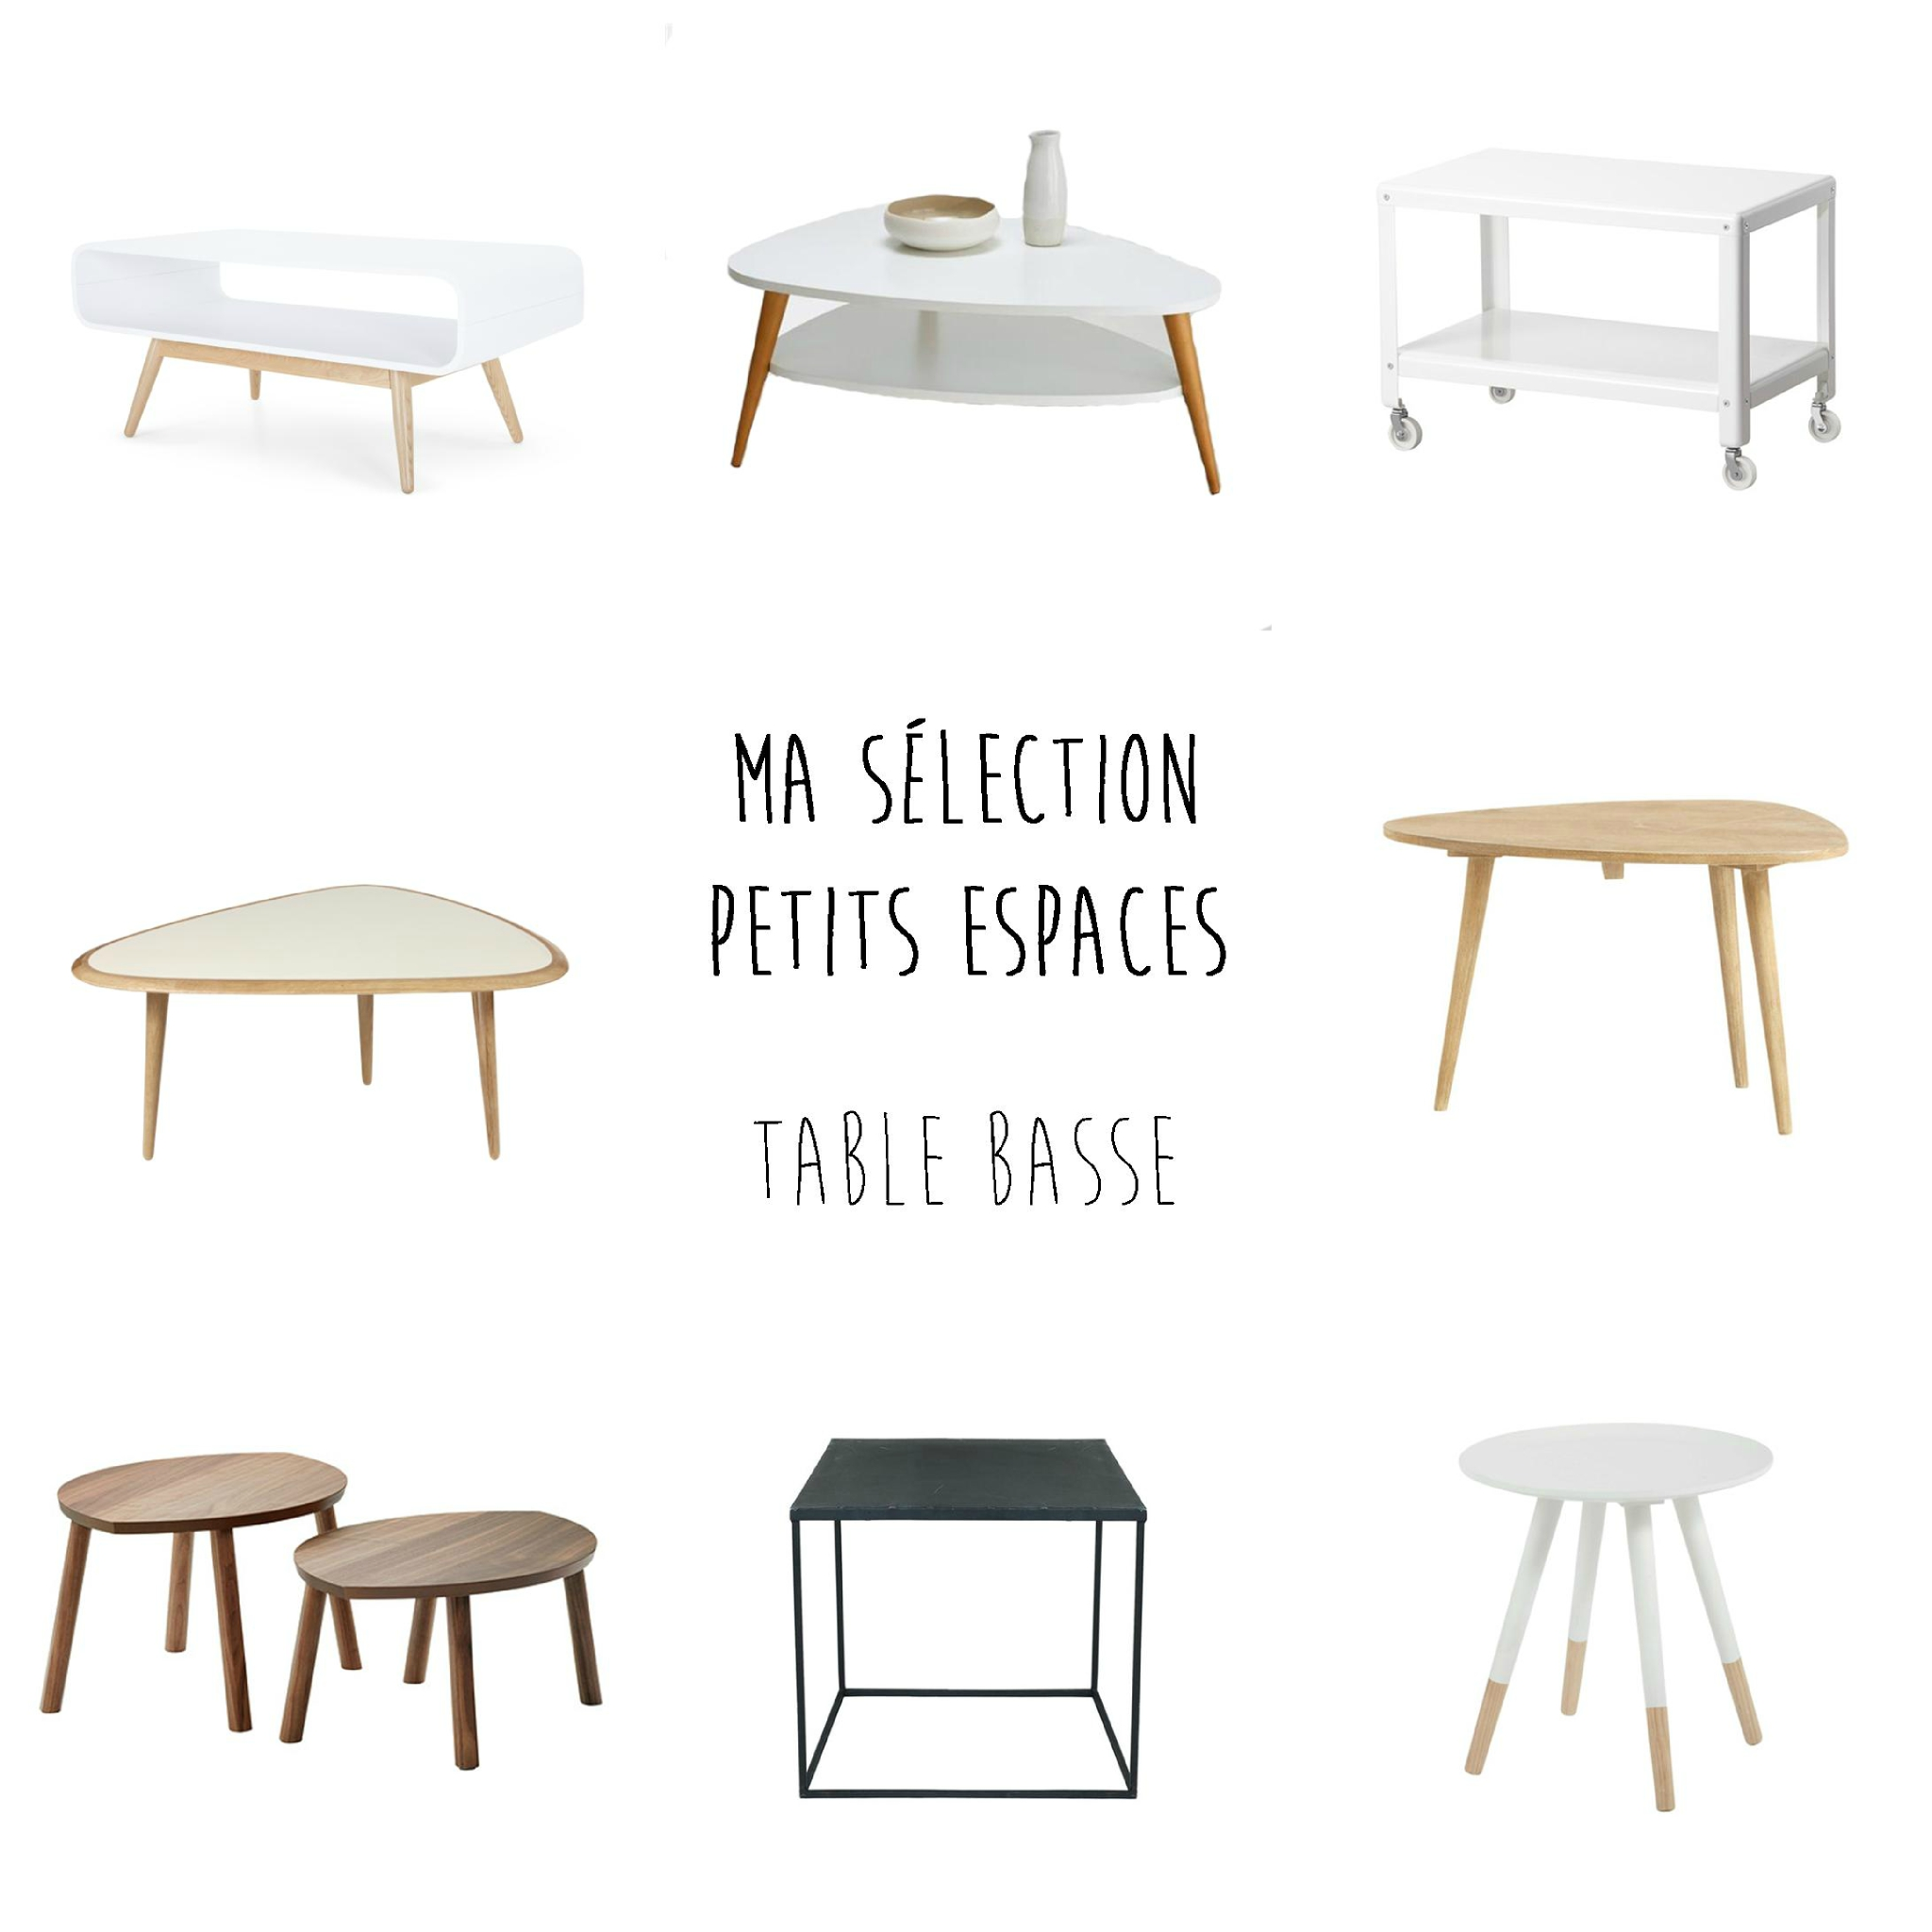 Table basse pour petit salon id es de d coration for Table basse pour petit salon